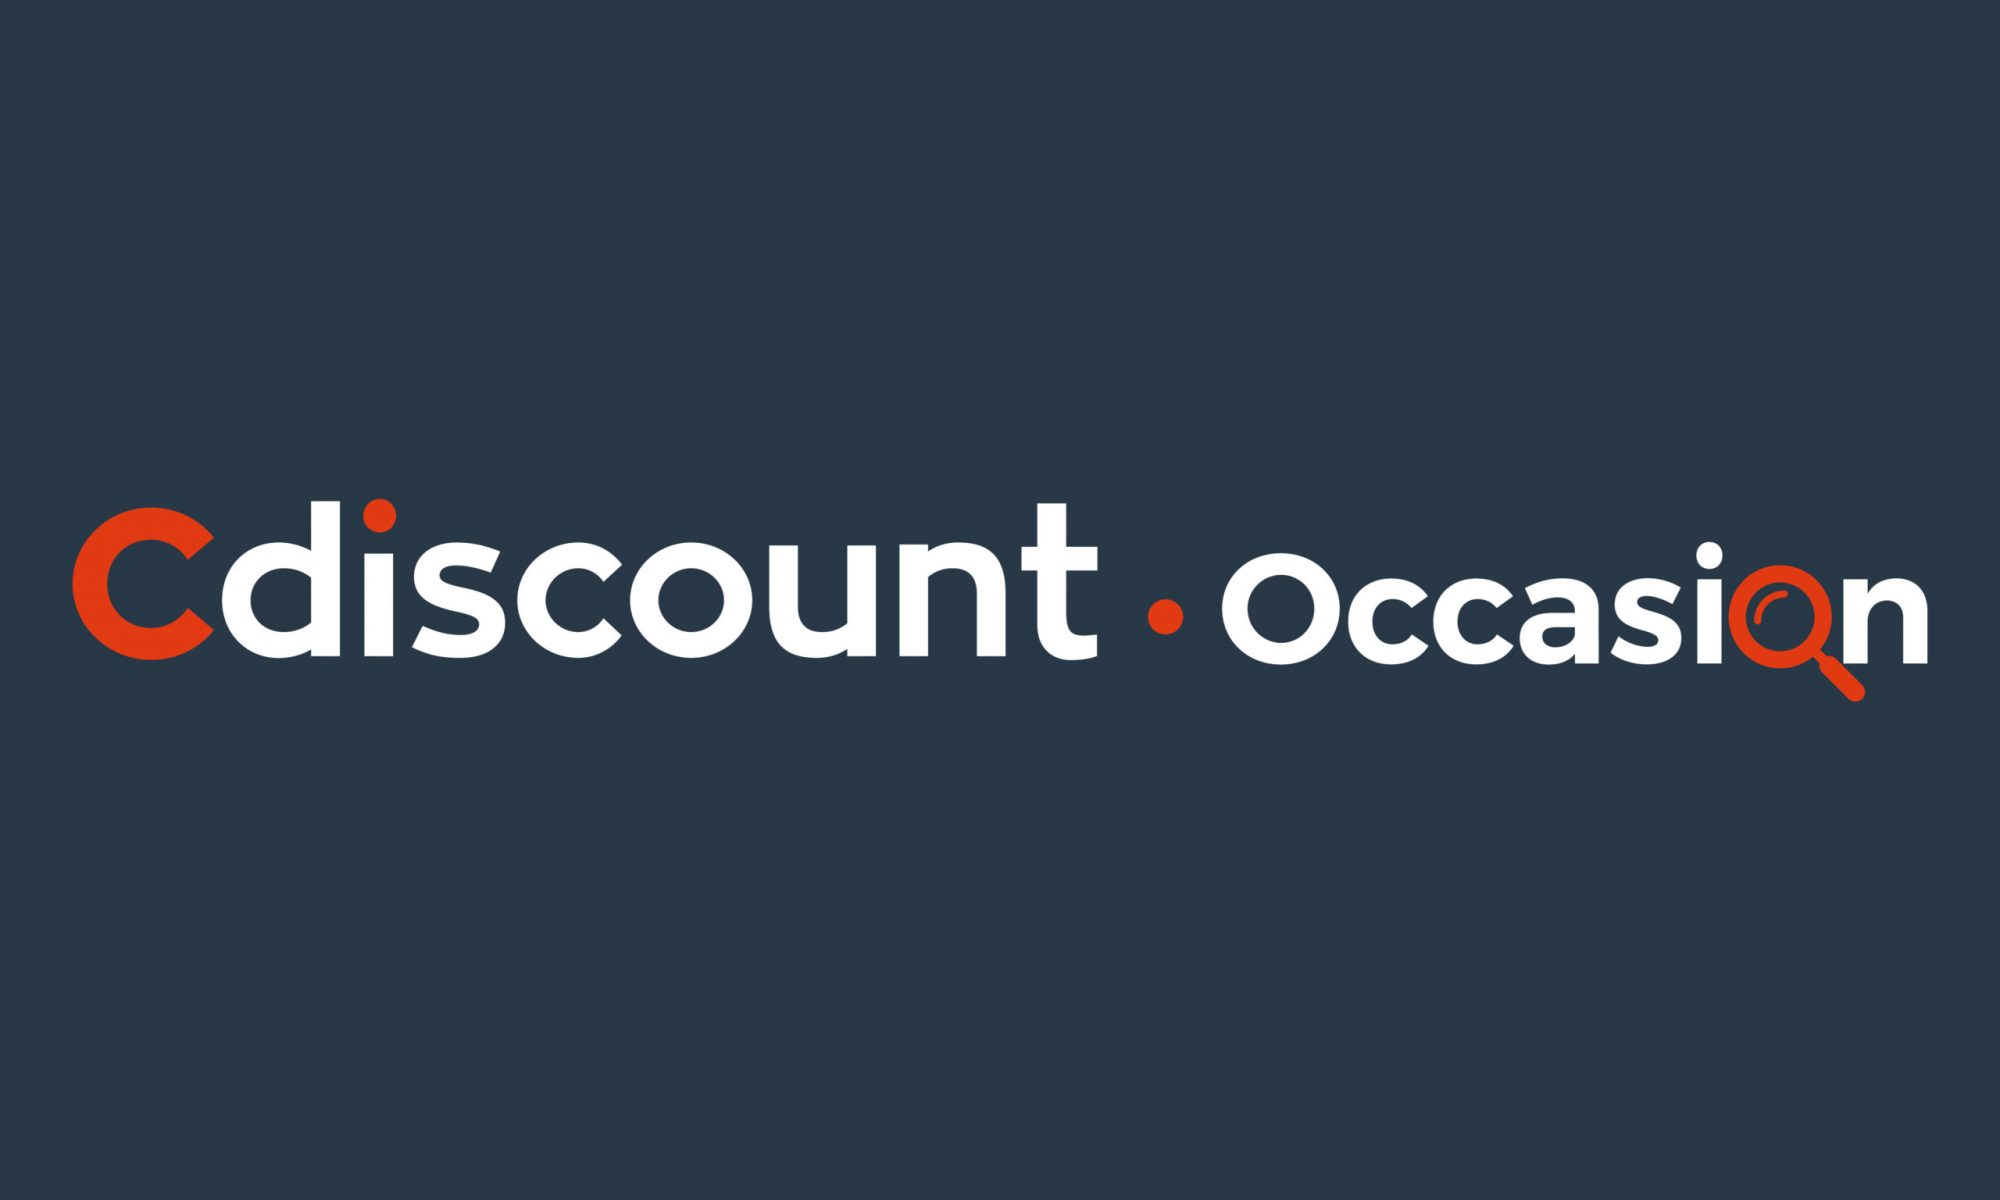 Cdiscount enters second-hand market with Cdiscount Occasion